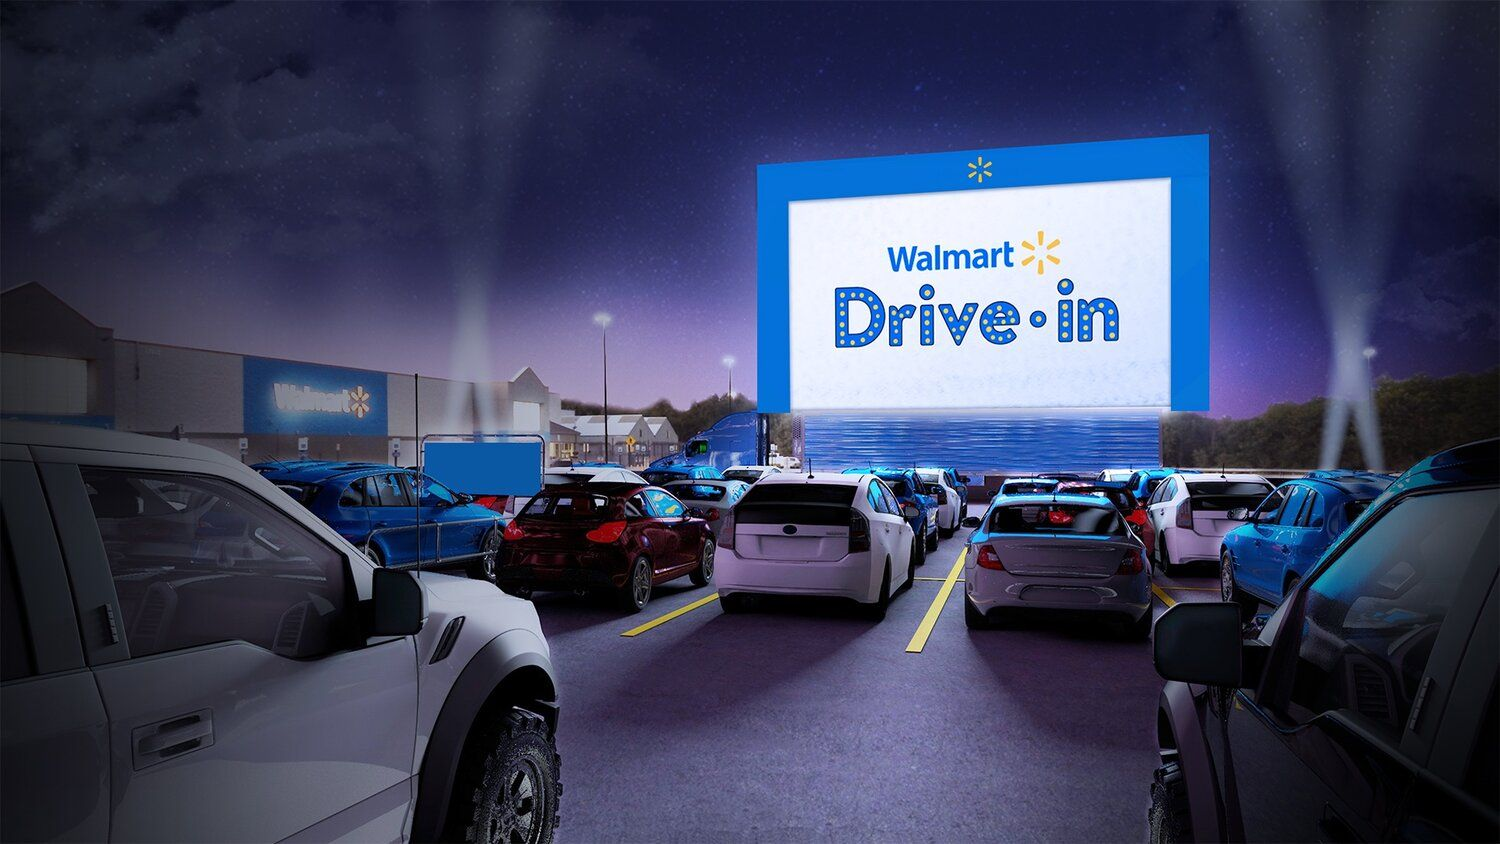 Wal Mart Will Turn Their Parking Lots Into Makeshift Drive In Movie Theaters Check Out At Www Spoilersin In 2020 Drive In Movie Theater Drive In Movie Drive In Theater